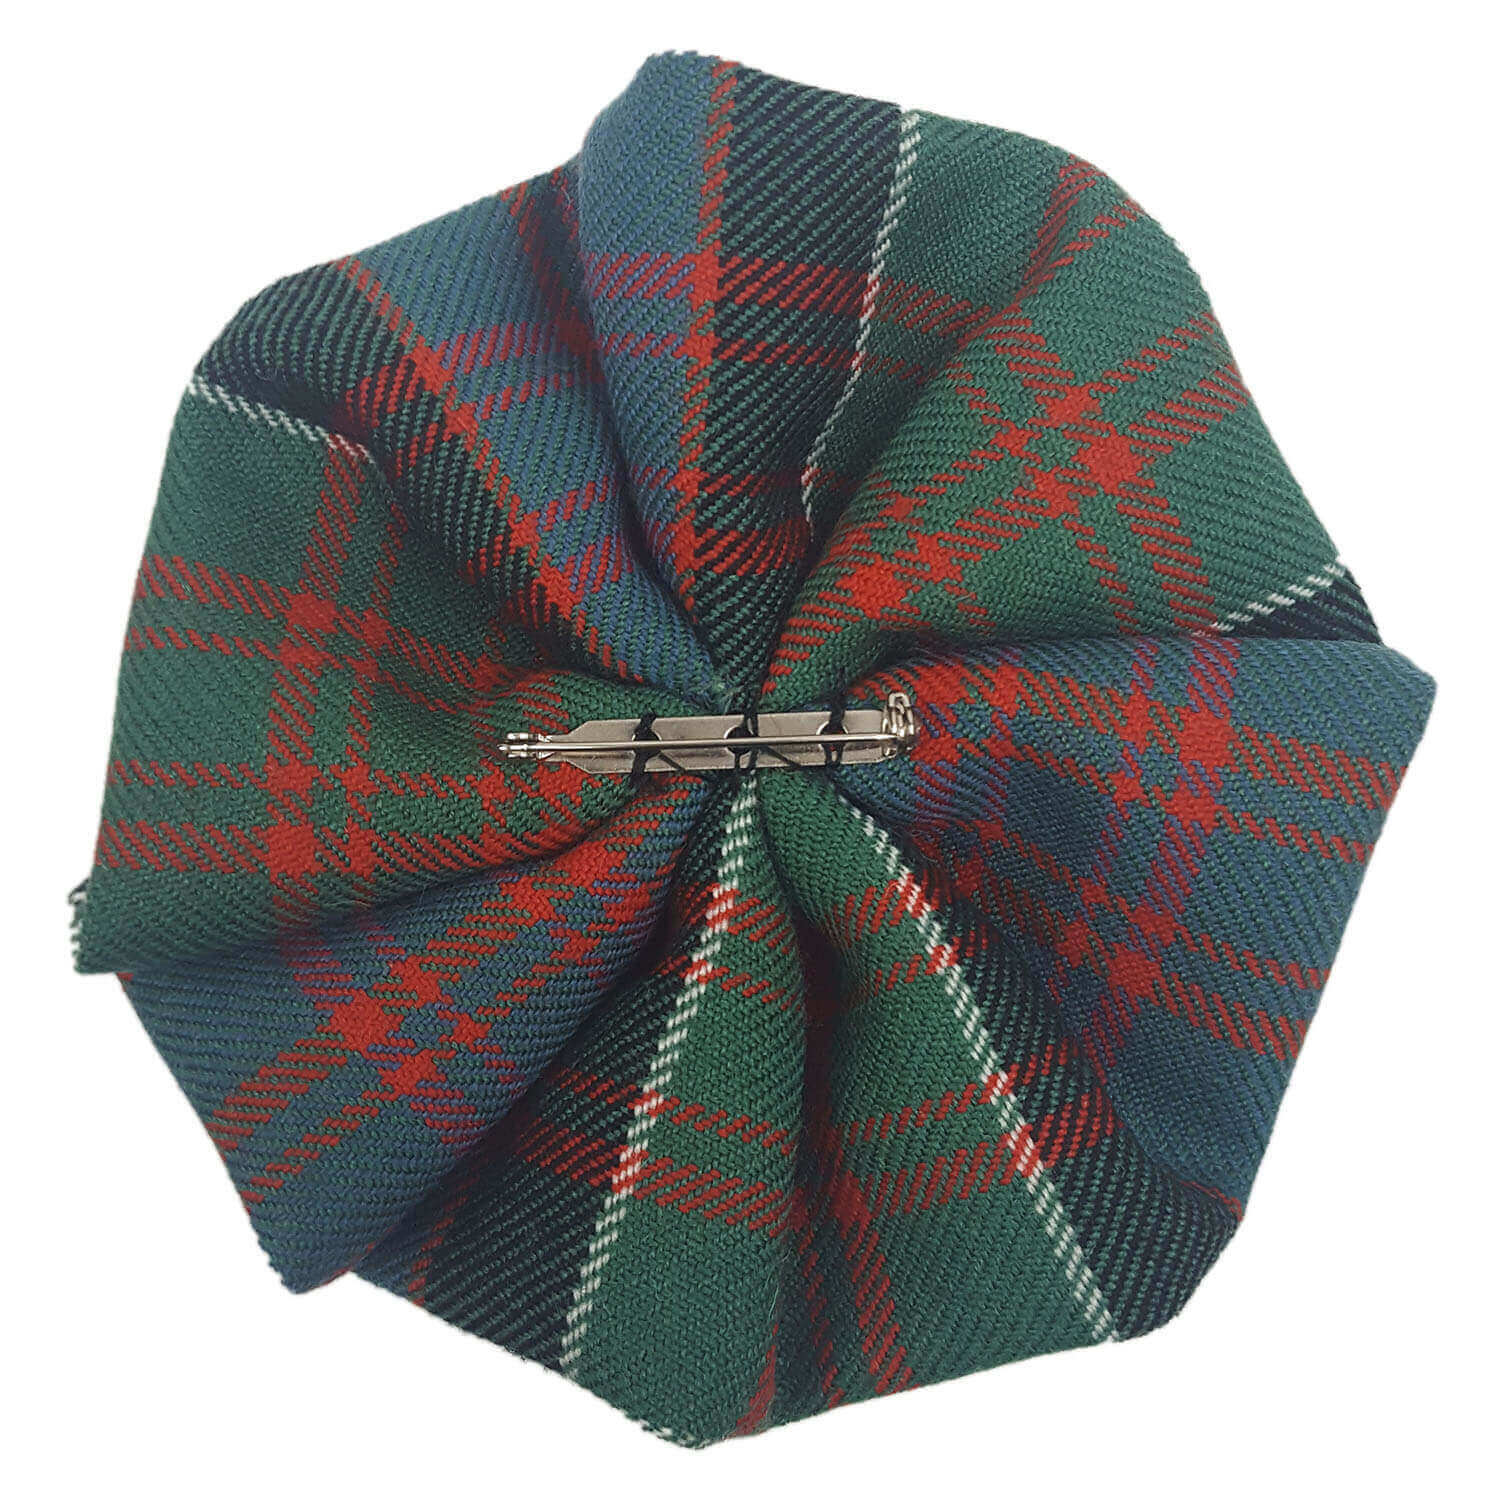 Medium Weight Premium Wool Tartan Rosettes